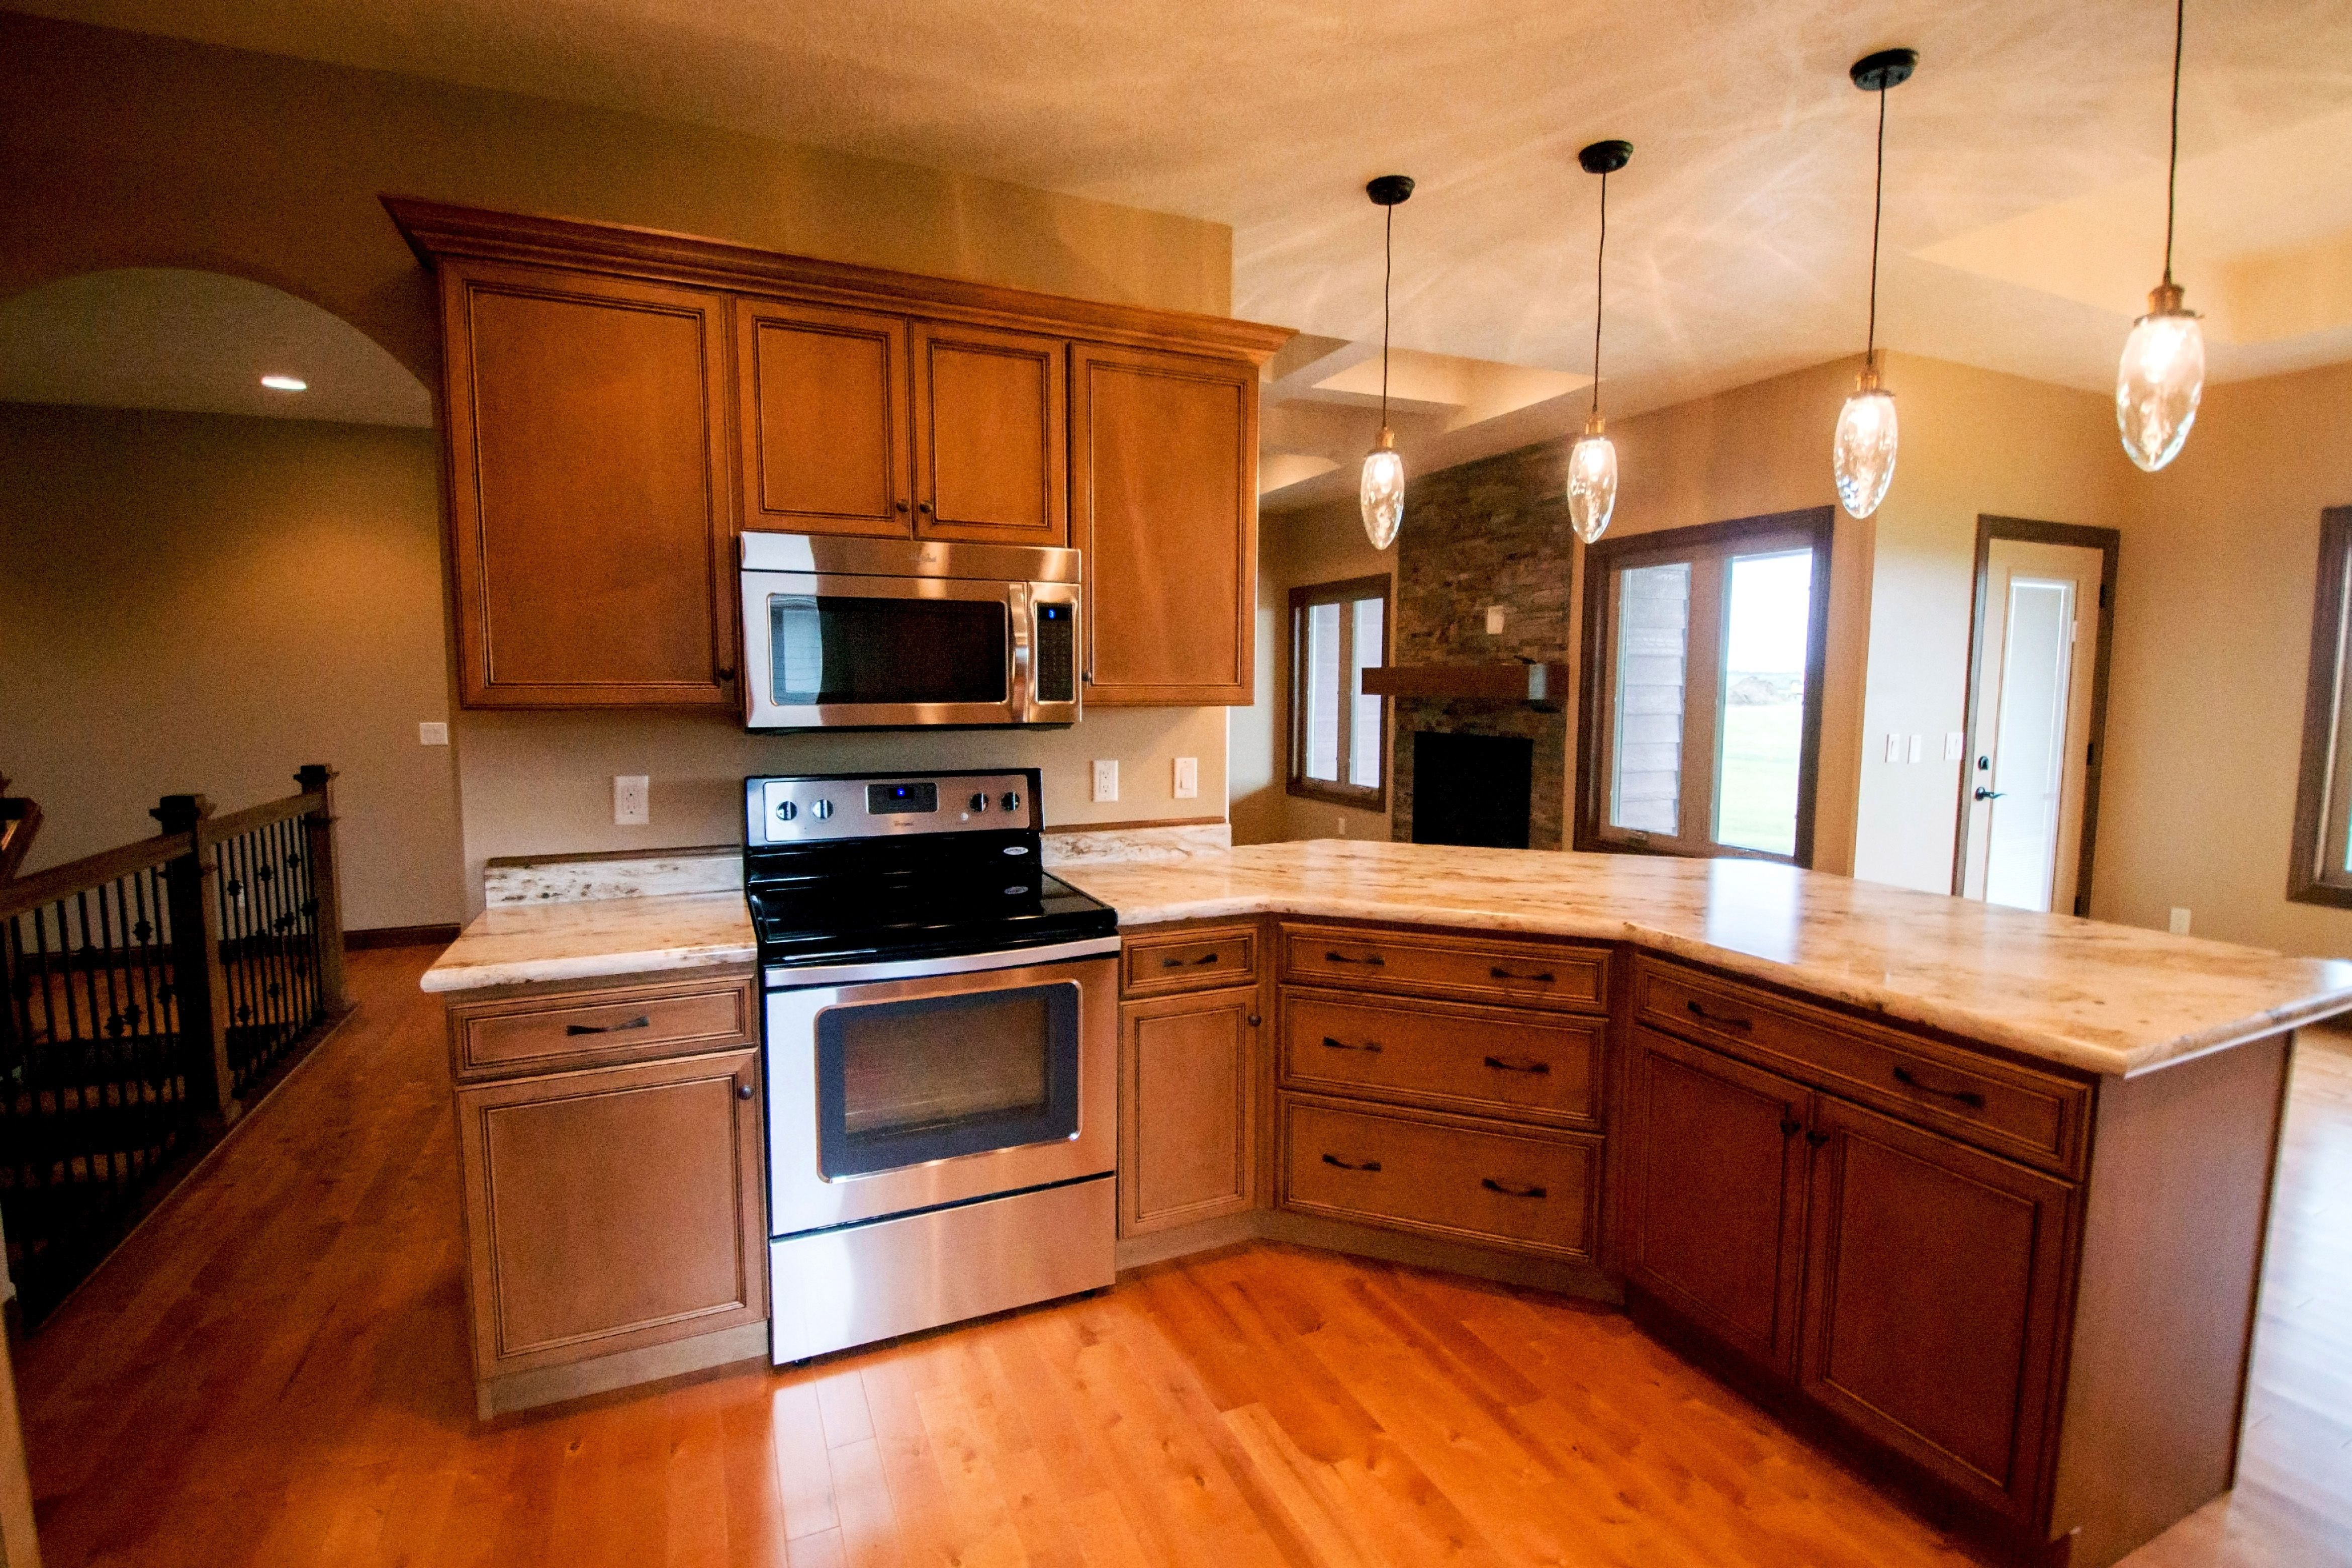 Kitchen Features Open Layout And Connects To Mudroom Starmark Cabinetry Cabinets In Maple Finished In Retro Appliances Home Appliances Local Furniture Stores